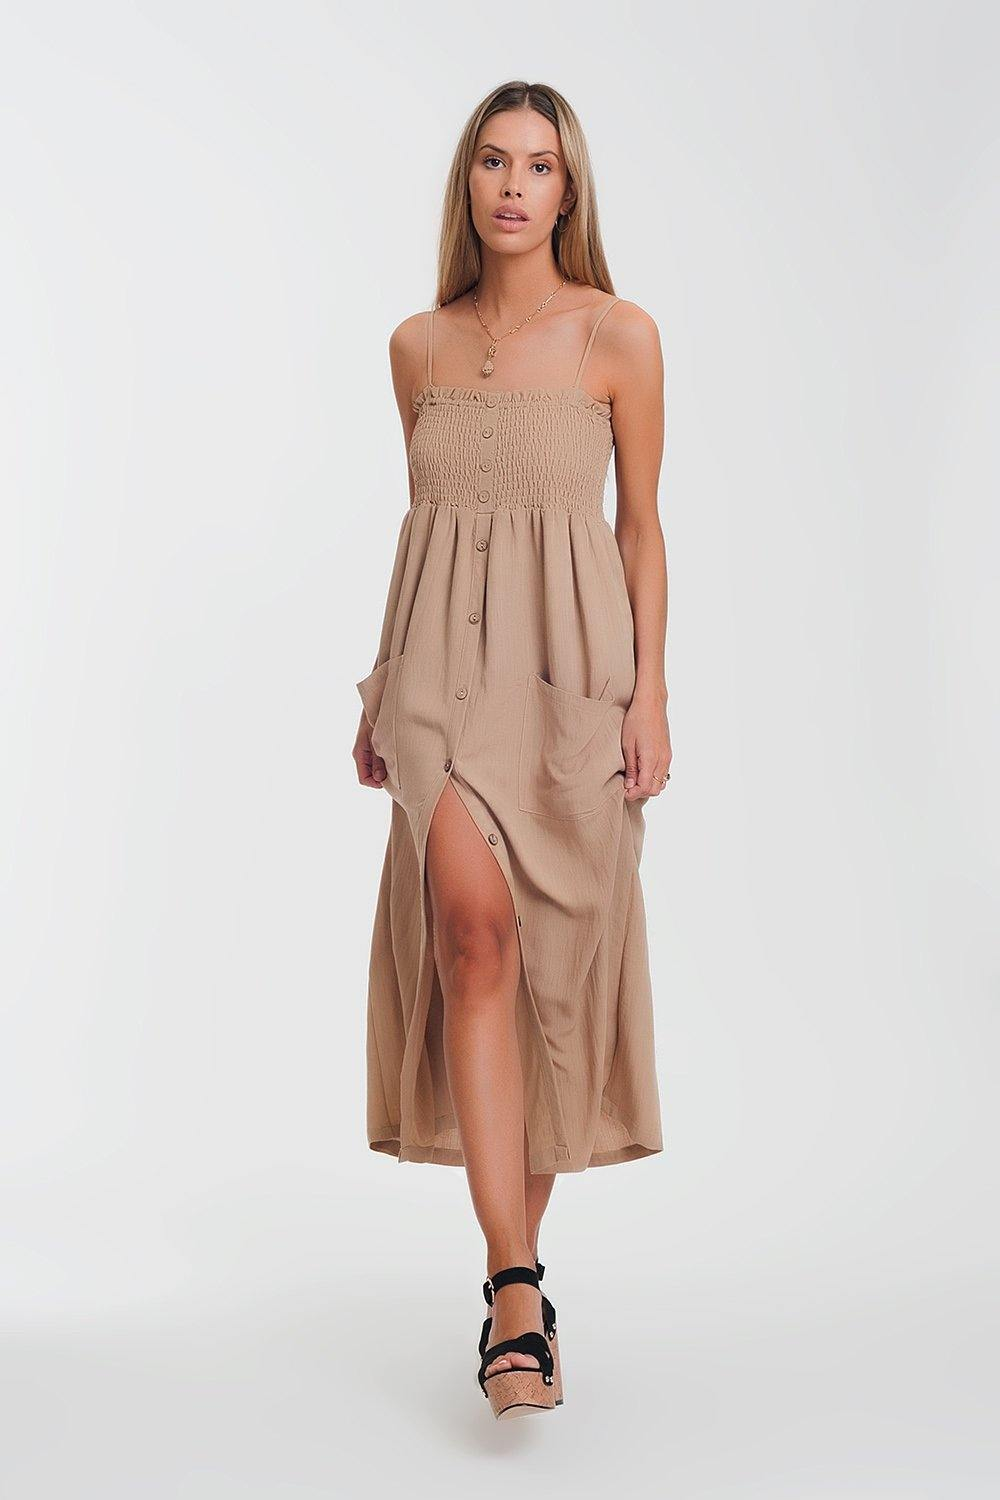 Q2 shirred bust maxi beige dress with pockets